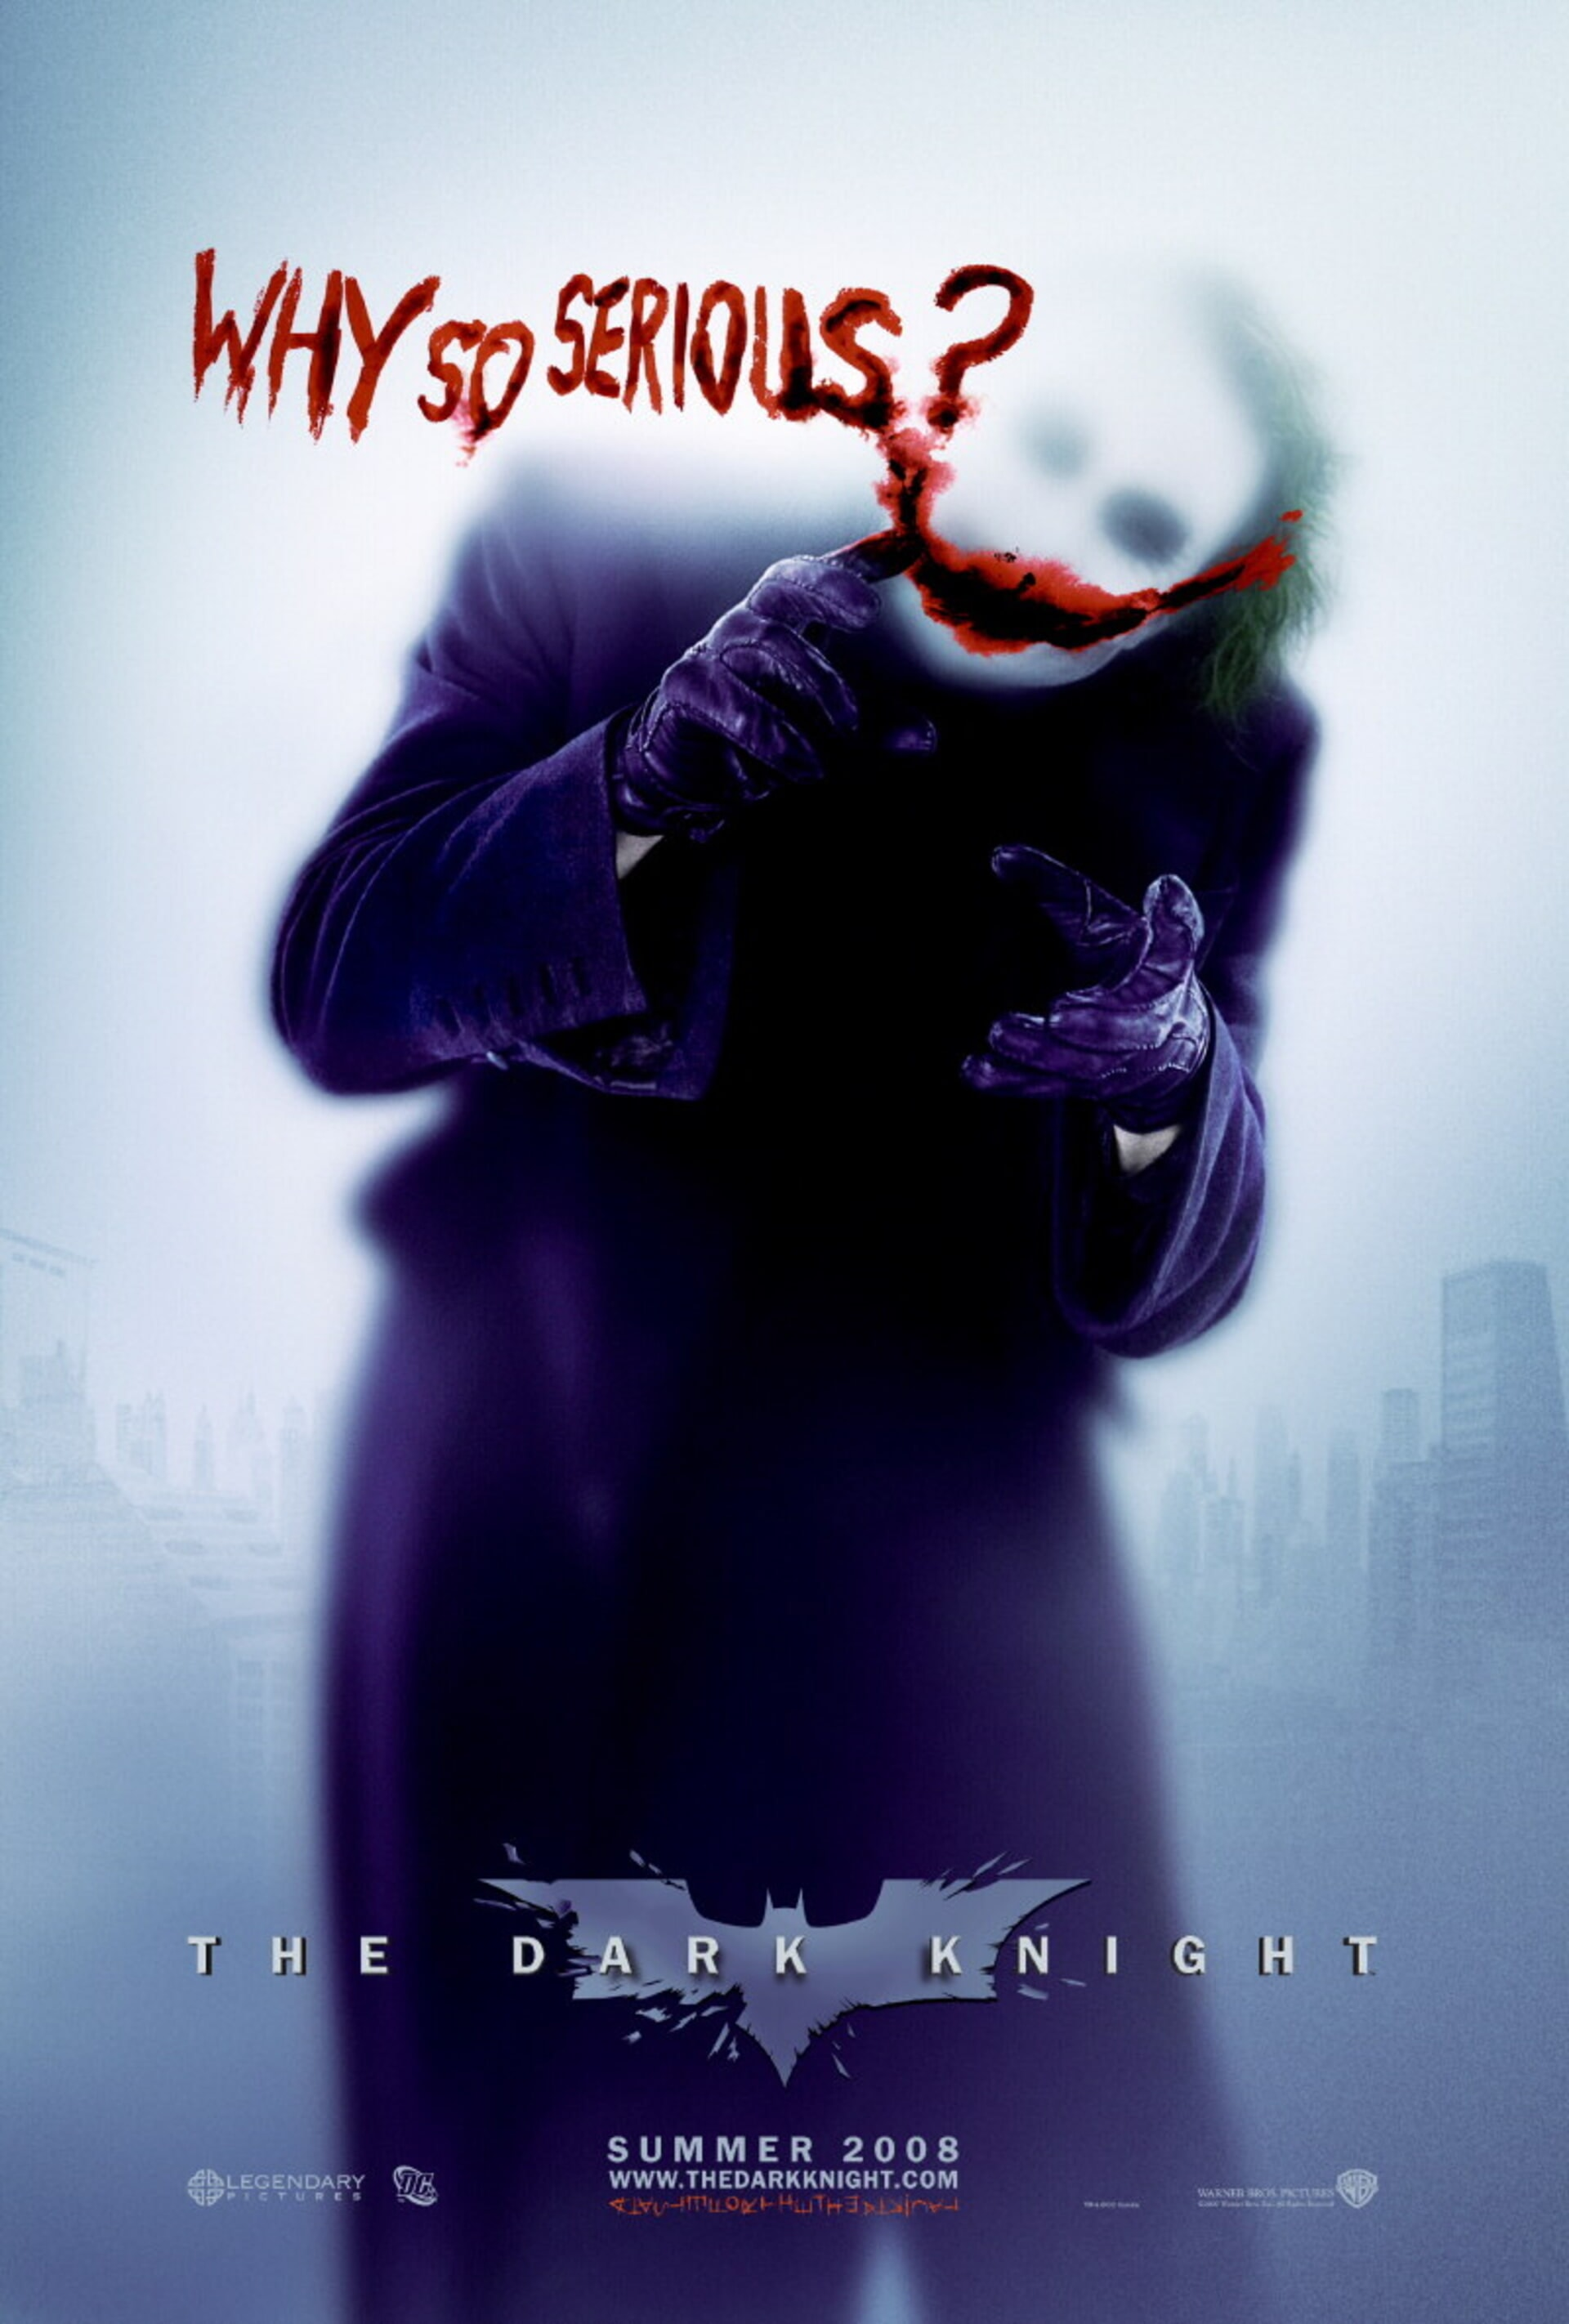 The Dark Knight - Poster 2